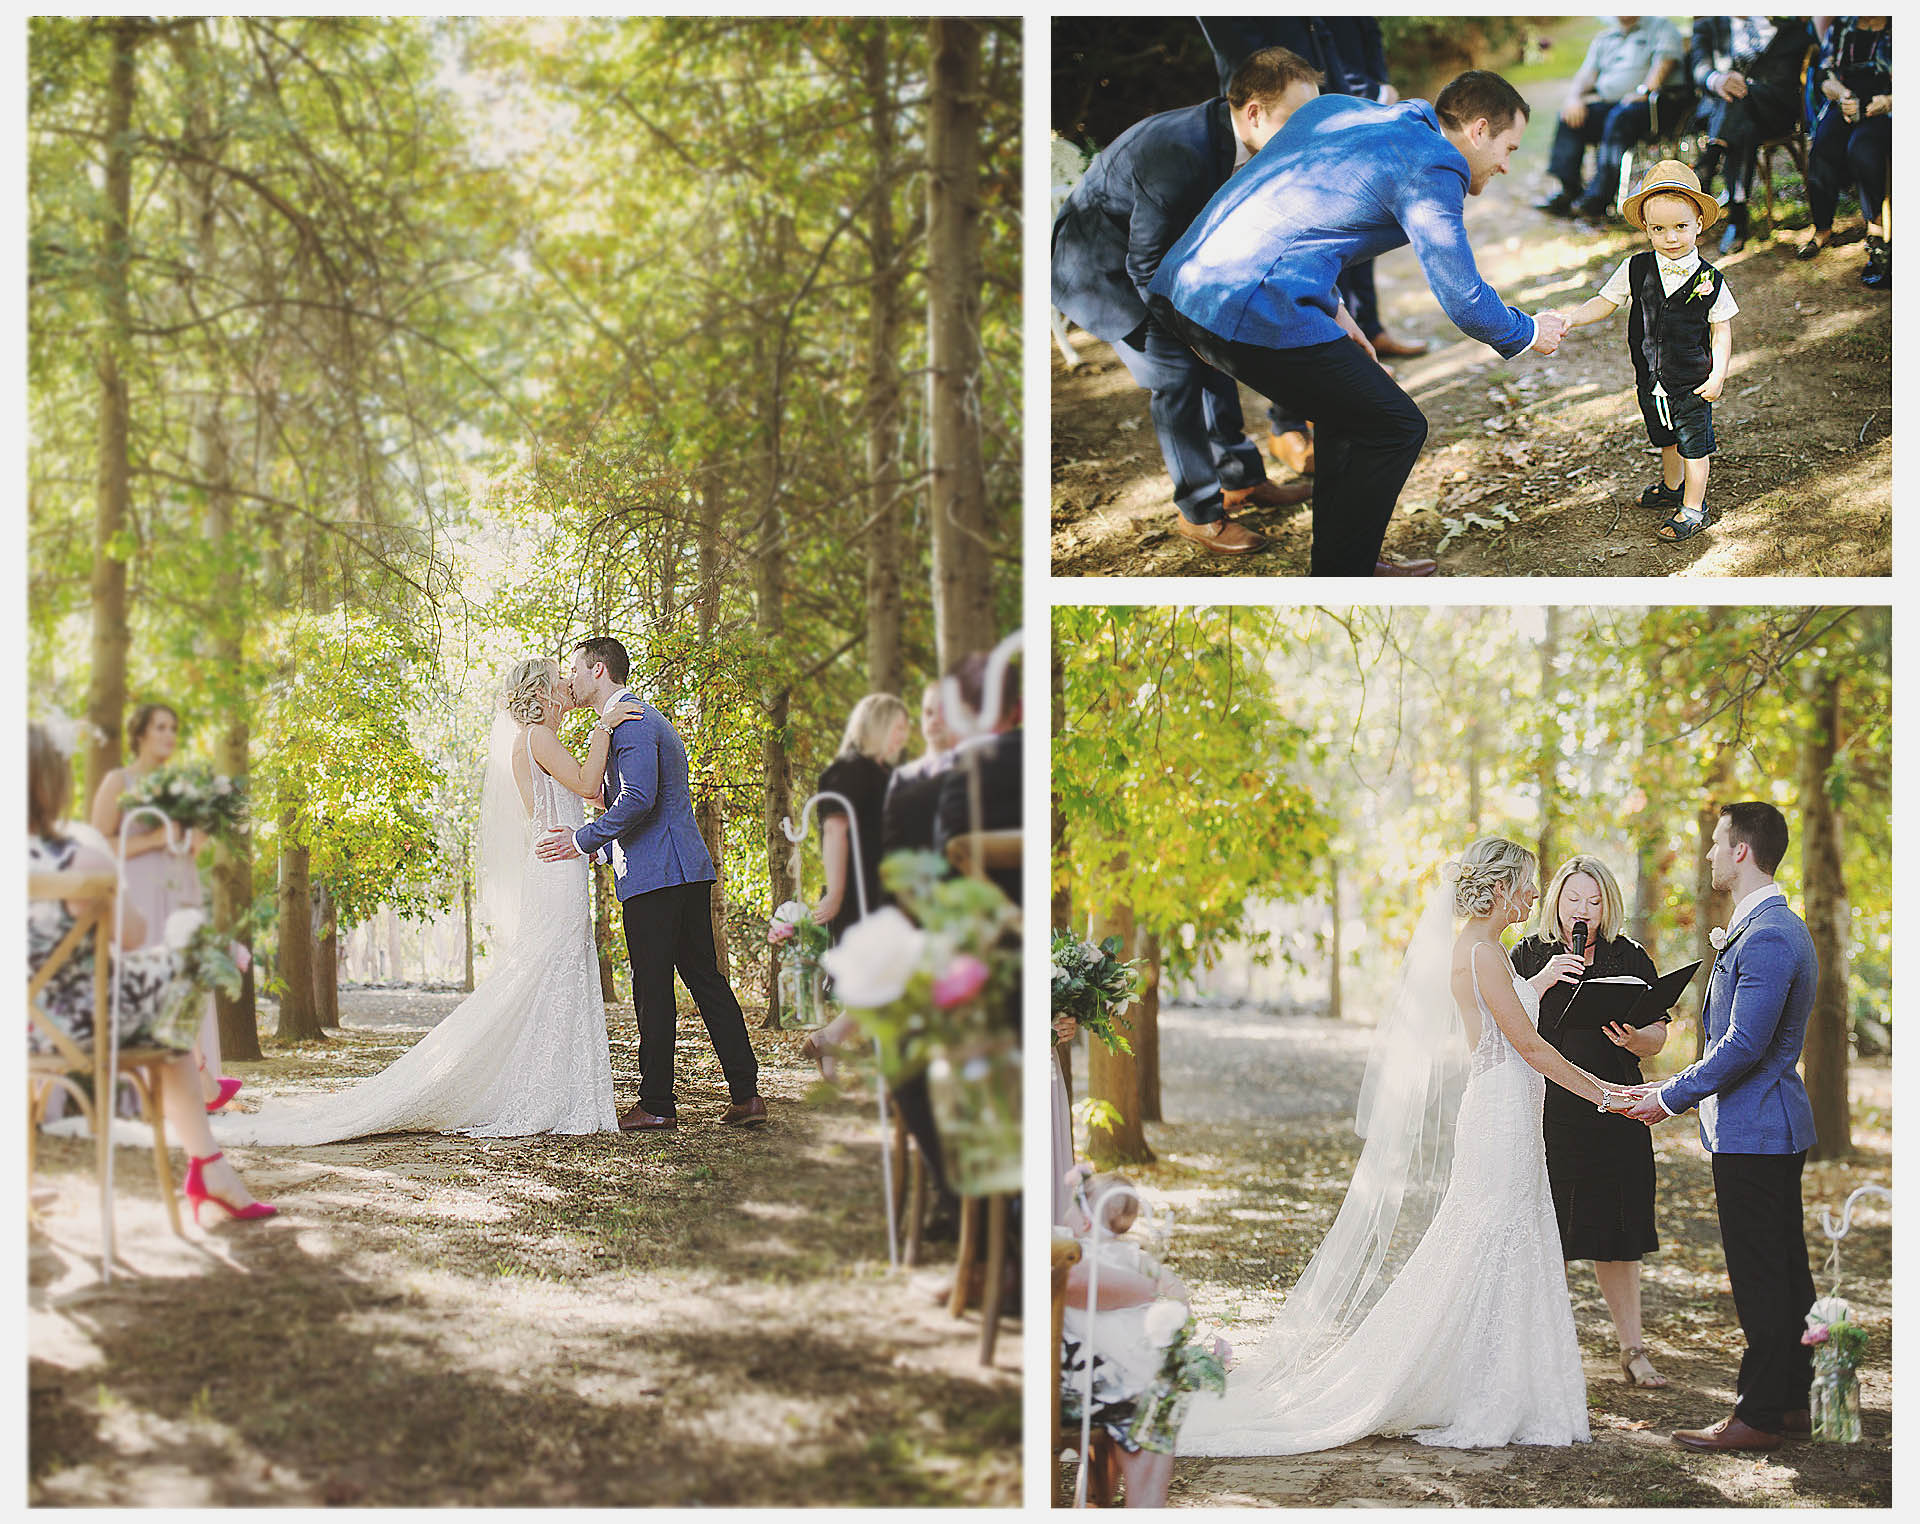 In the wedding ceremony the cute little ring bear handed the ring to the bestman